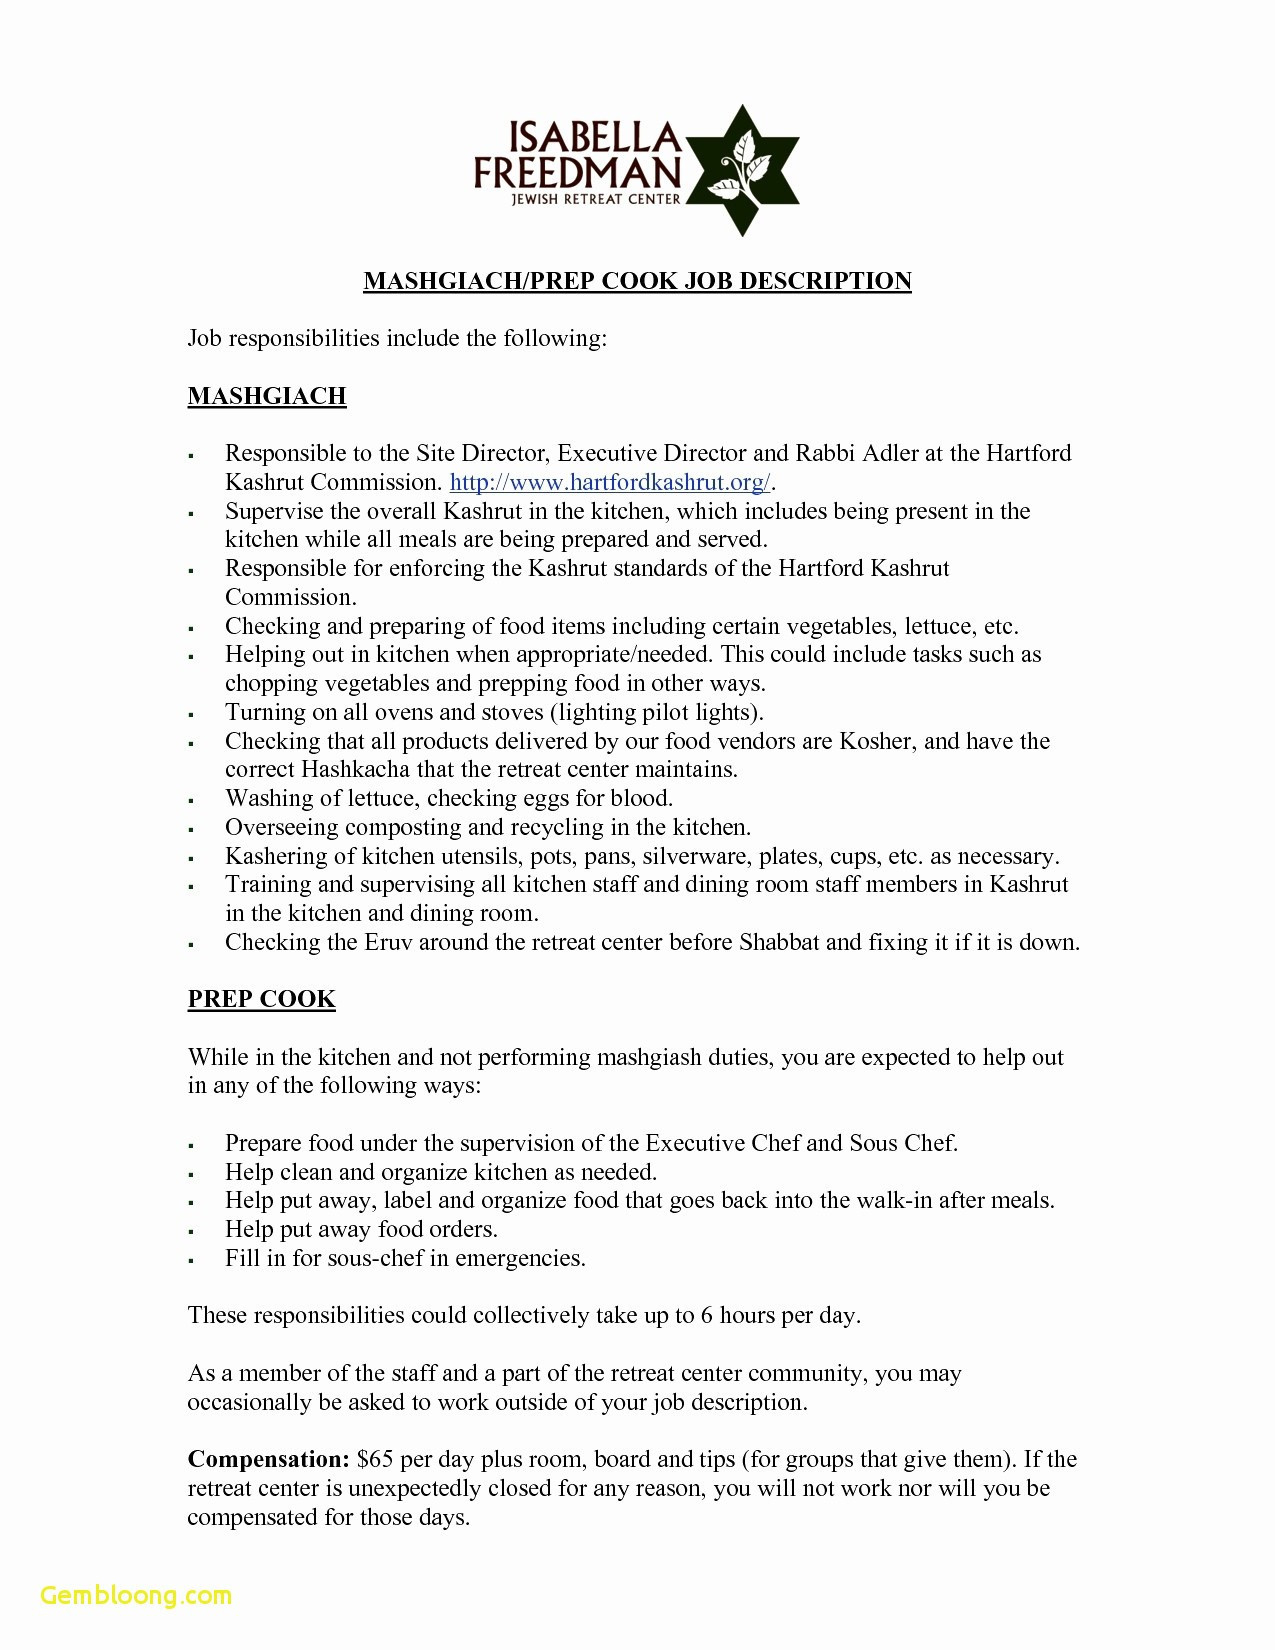 New Hire Letter Template - Resume Templates Copy and Paste Simple New Job Fer Letter Template